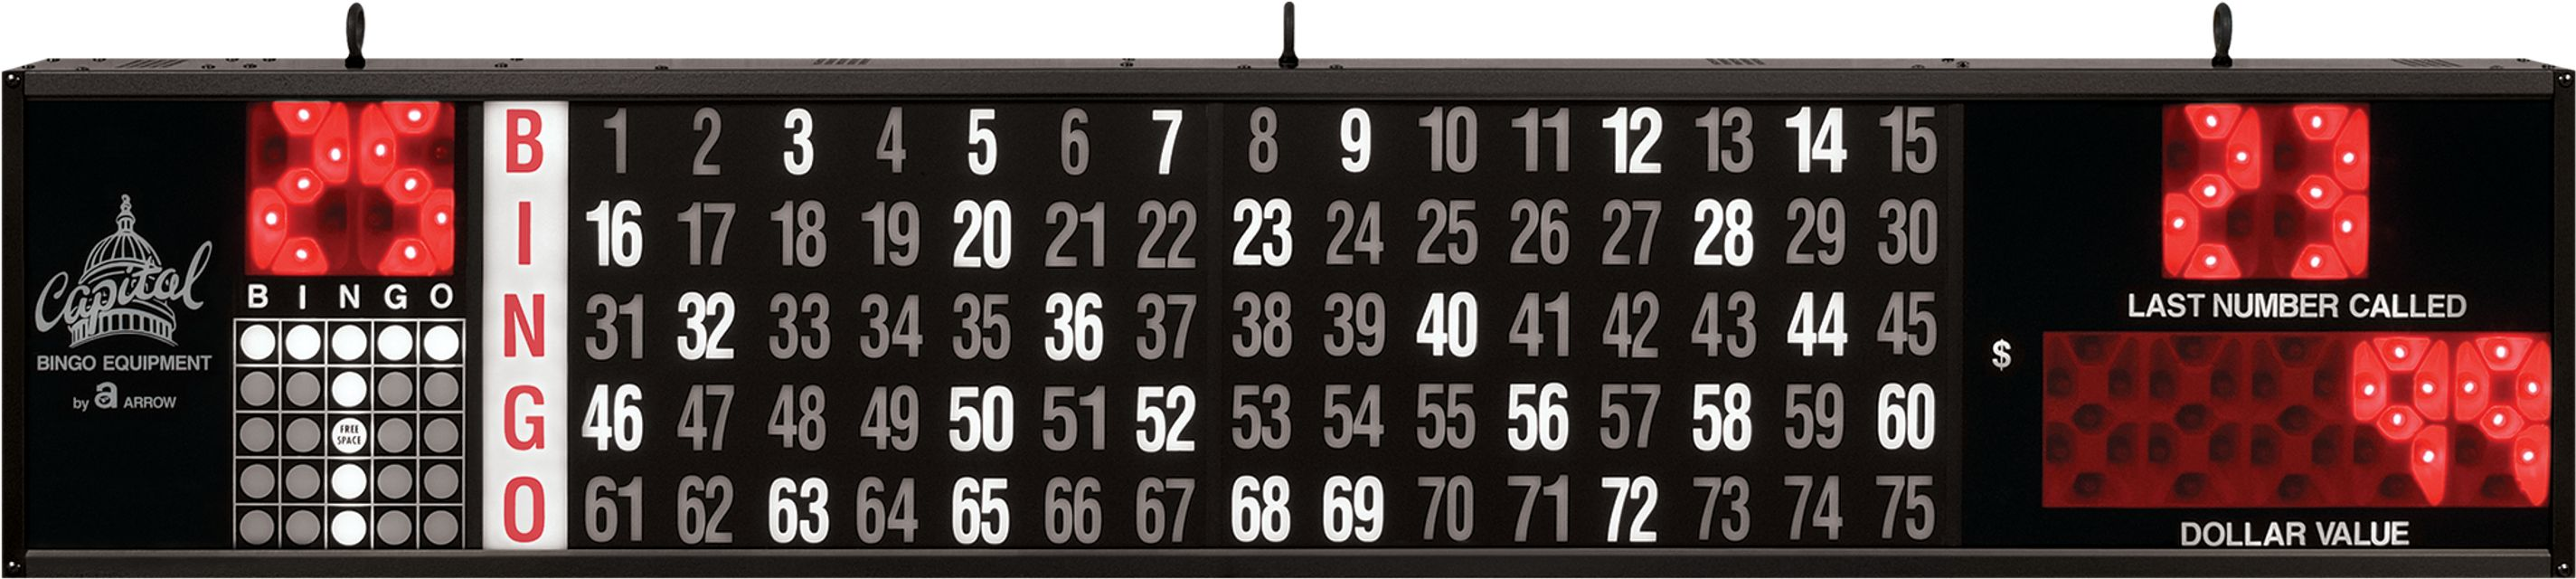 Access DollarValue BINGO EQUIPMENT/Flashboards